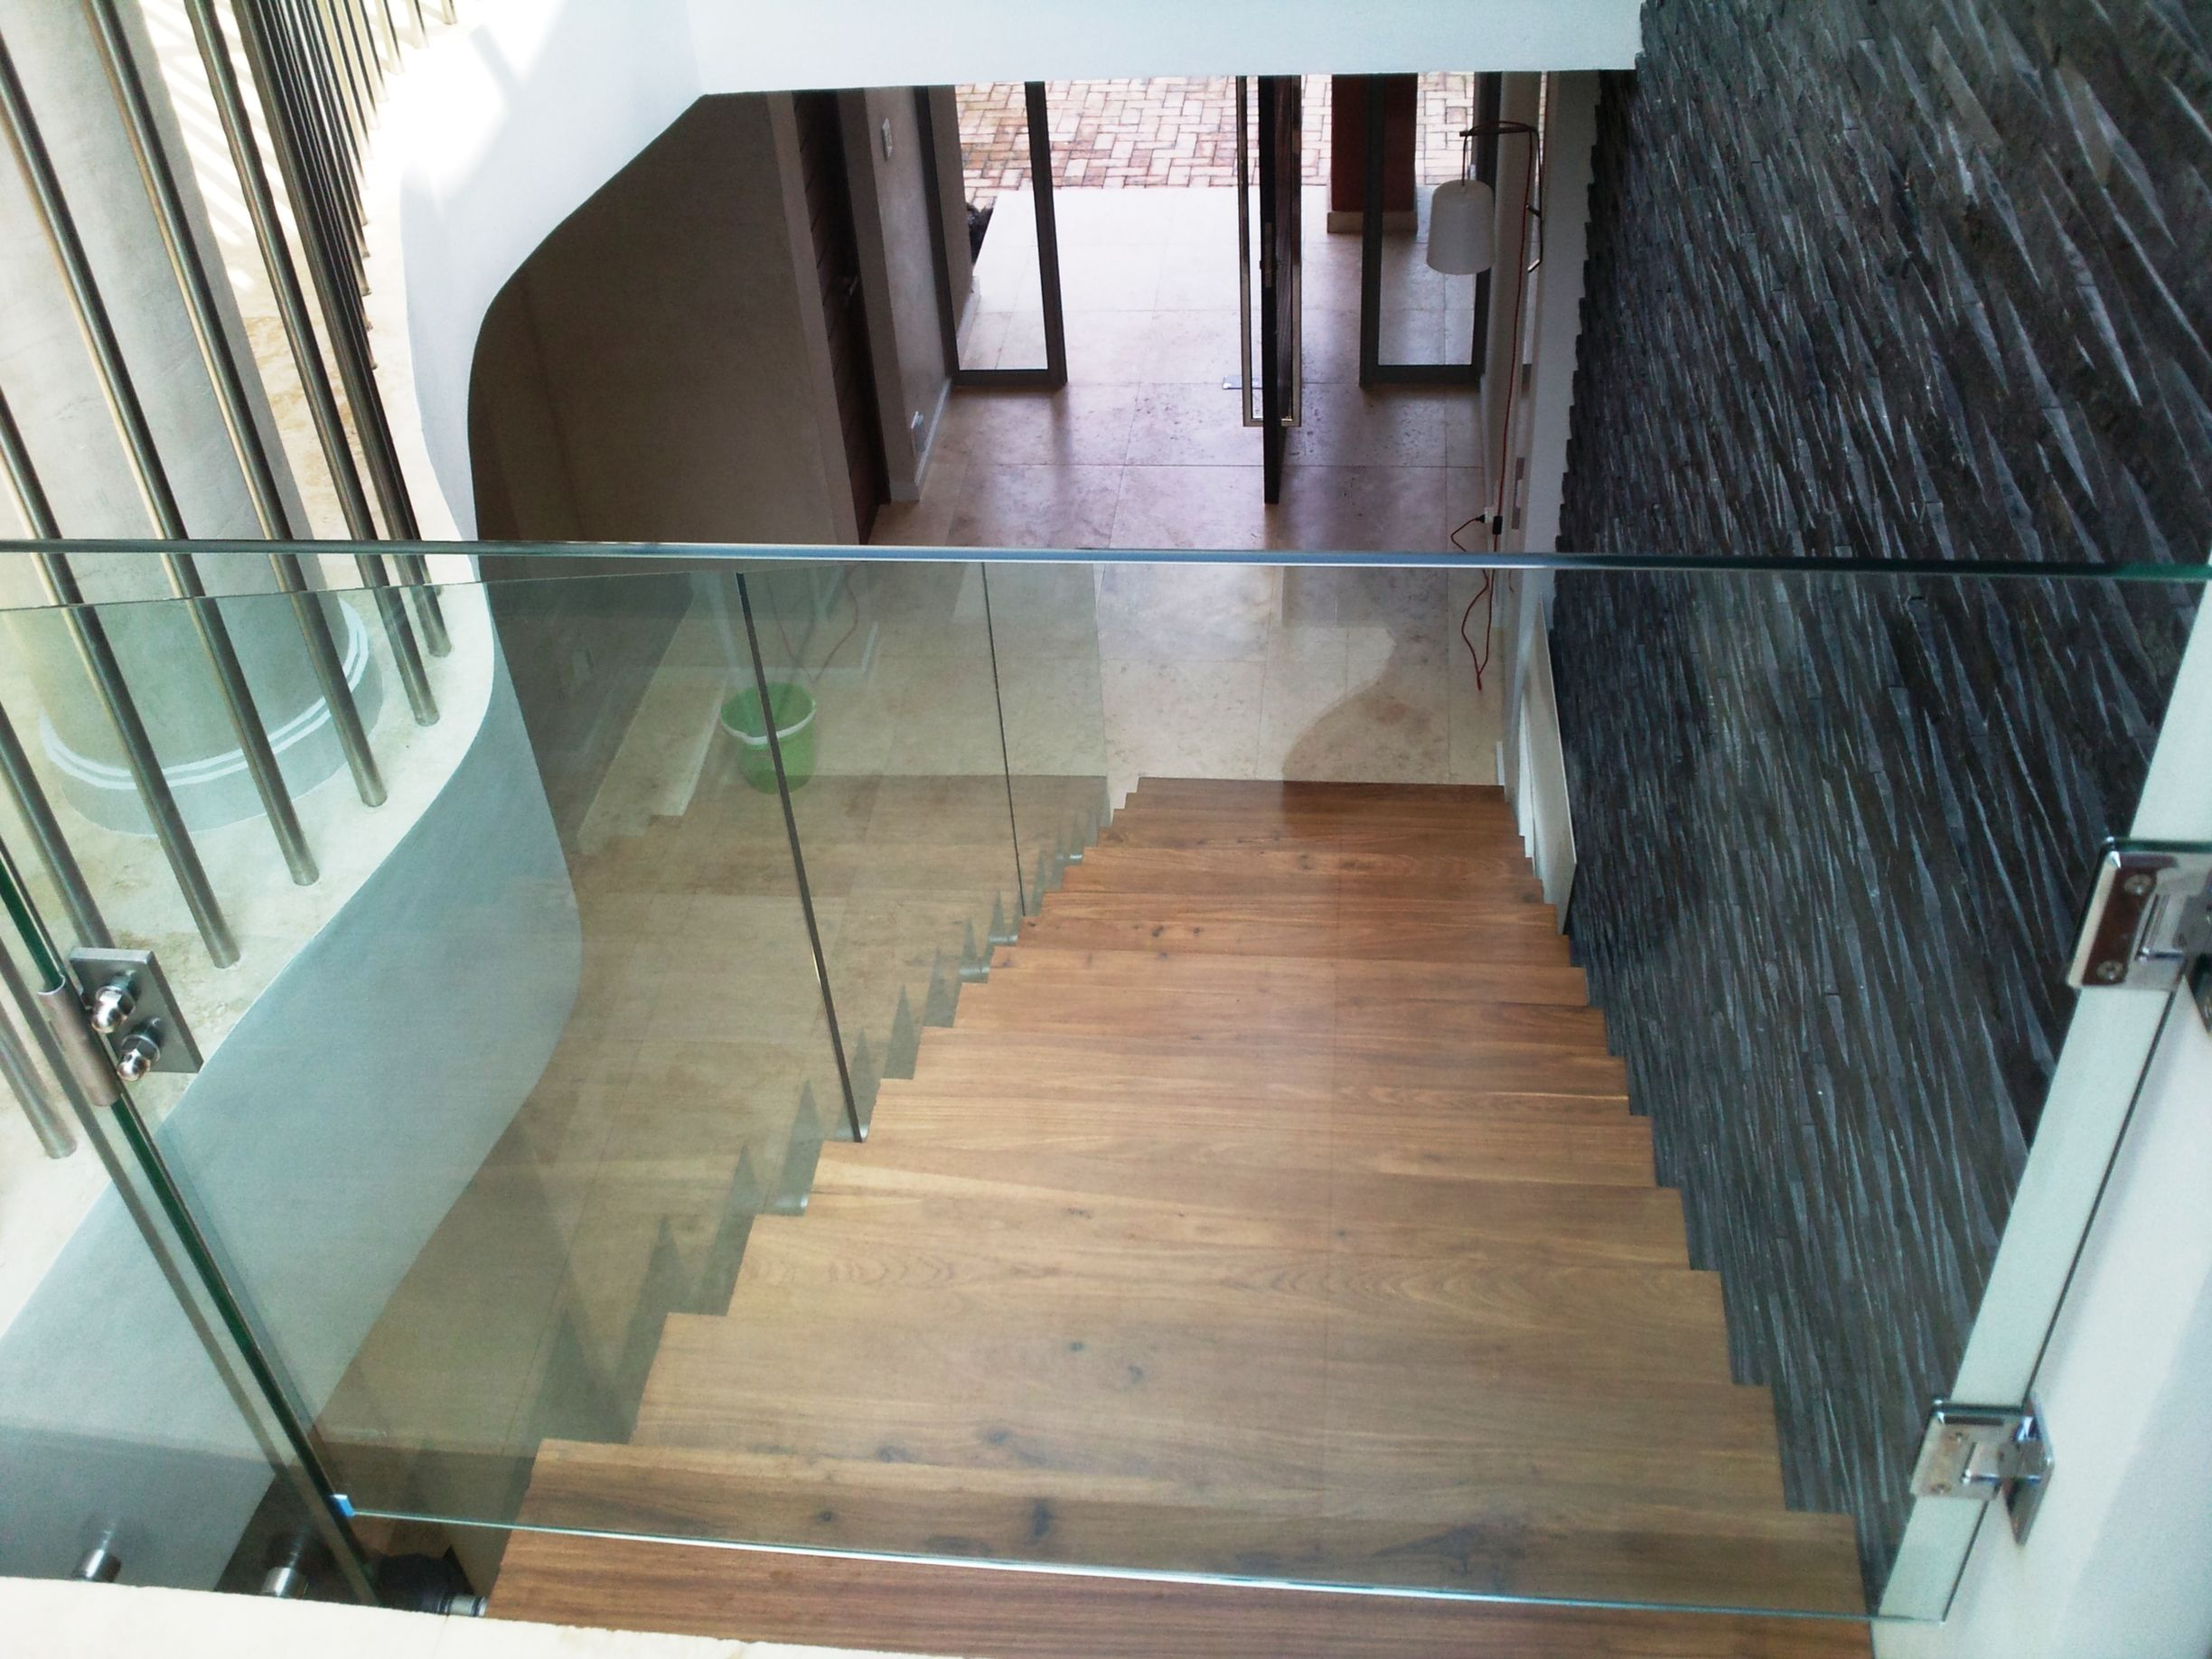 Image Result For Glass Stair Child Gates Child Gates For Stairs, Kids Gate,  Safety